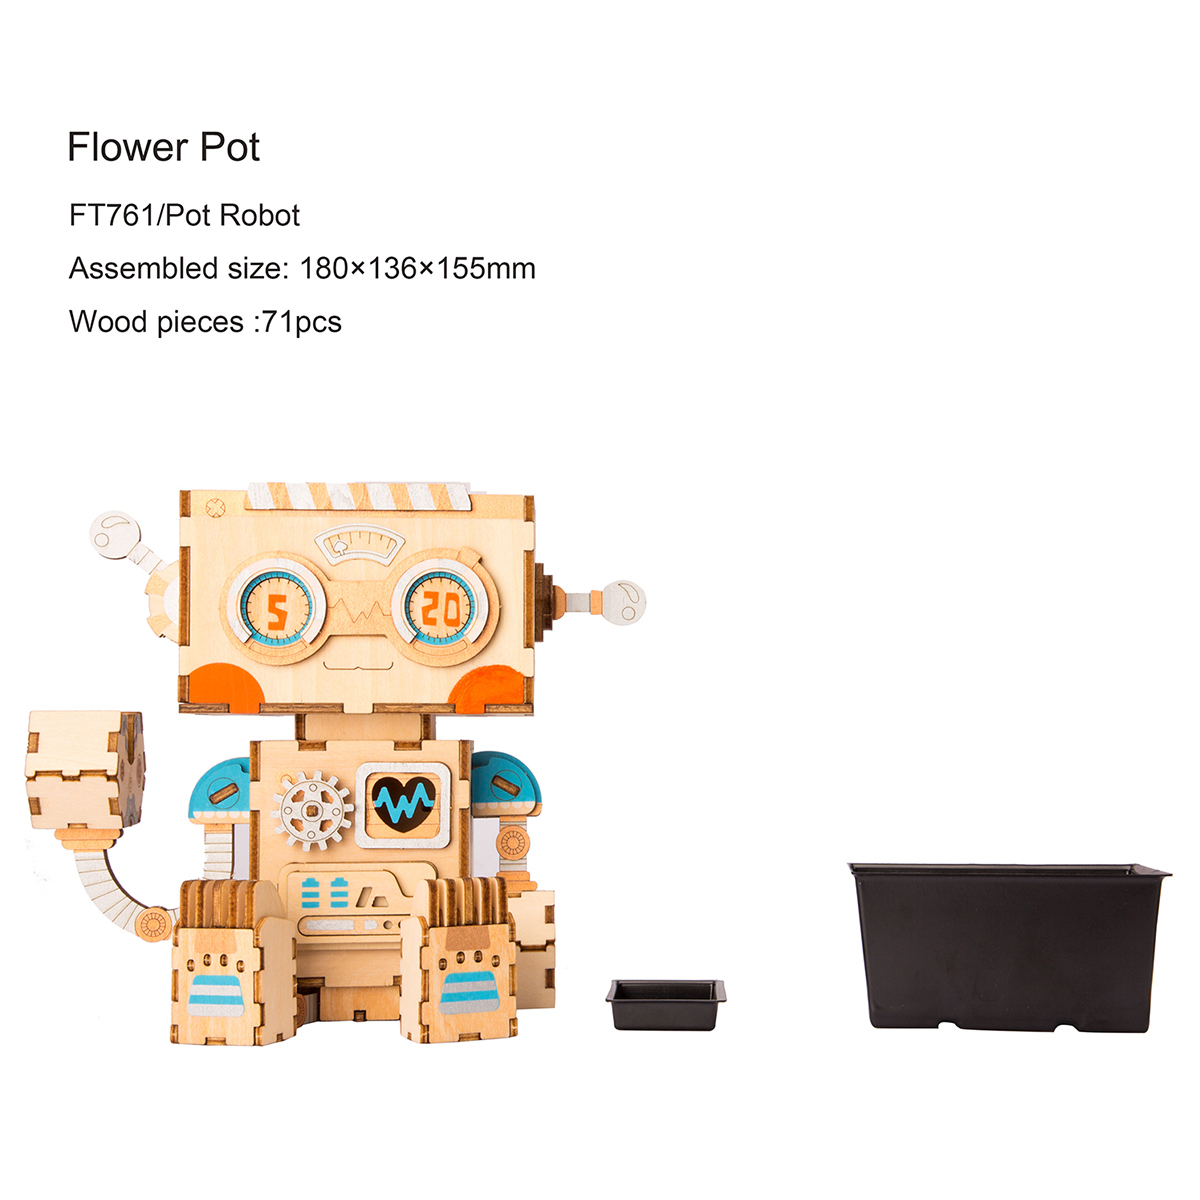 Pot Robot FT761